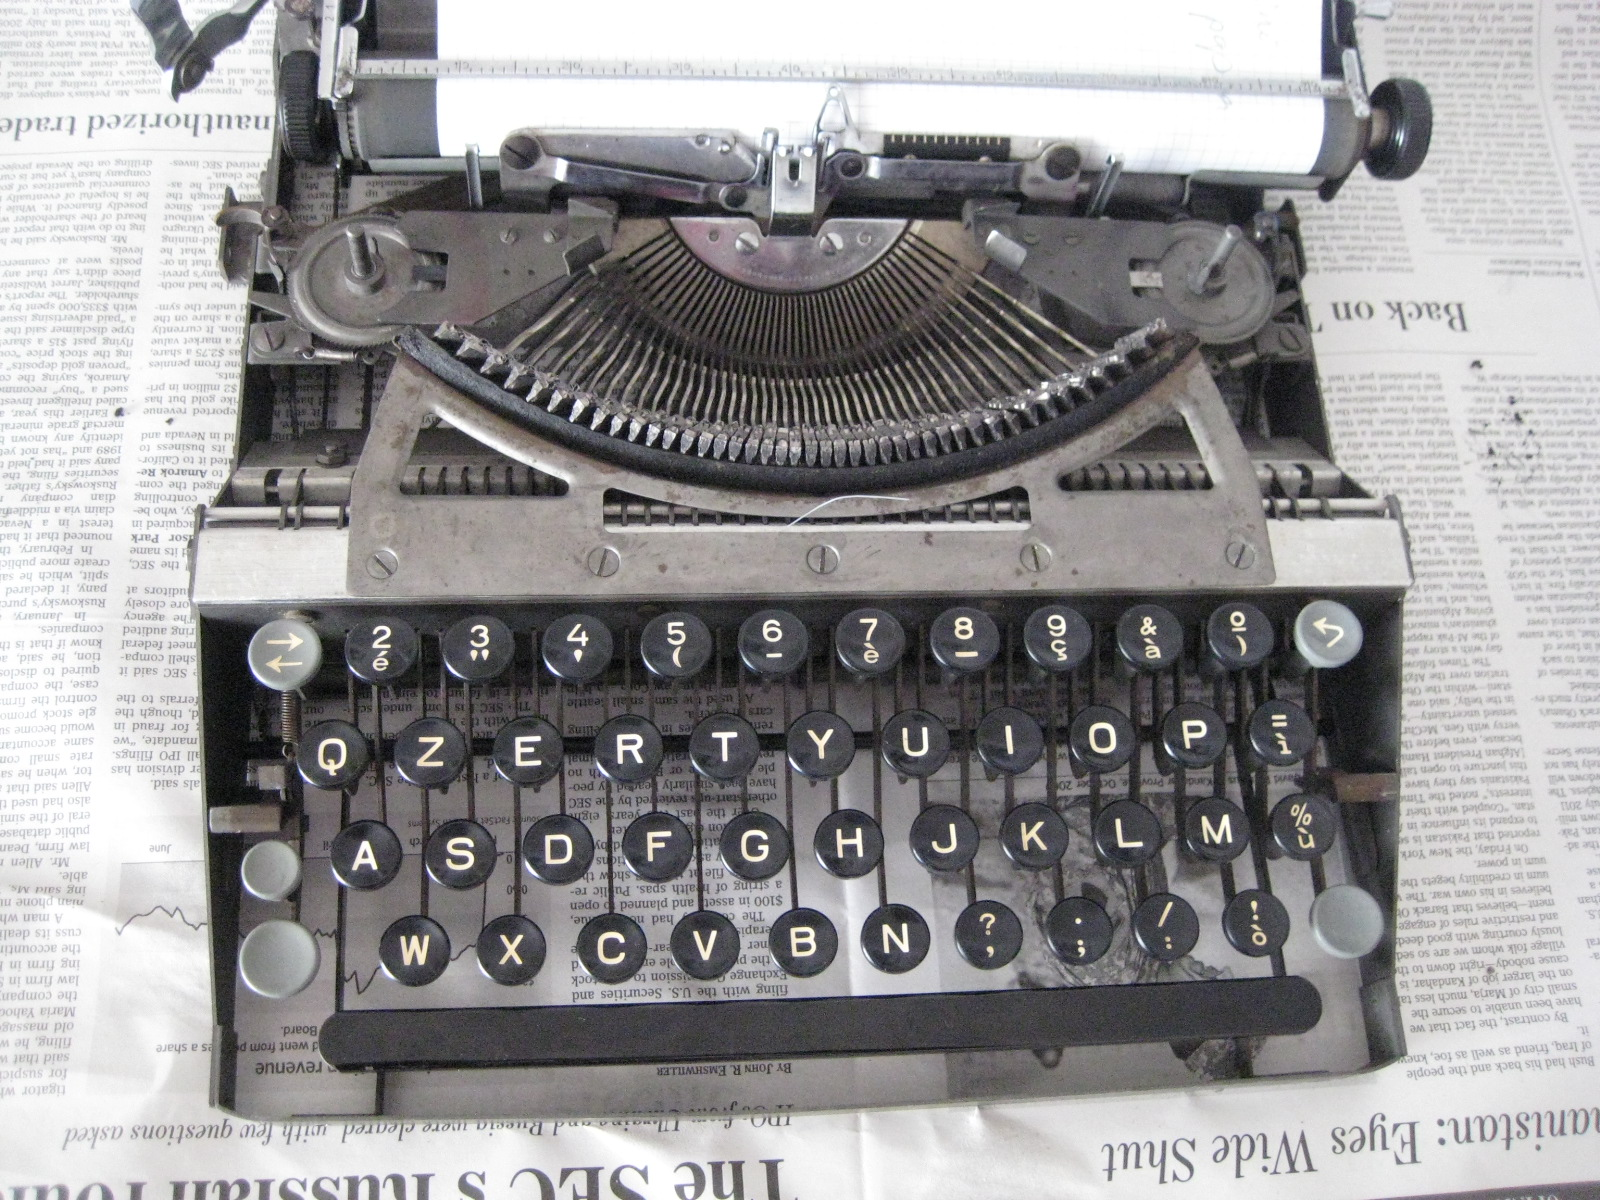 A photo of an Italian QZERTY keyboard/typewriter on a Hermes Baby